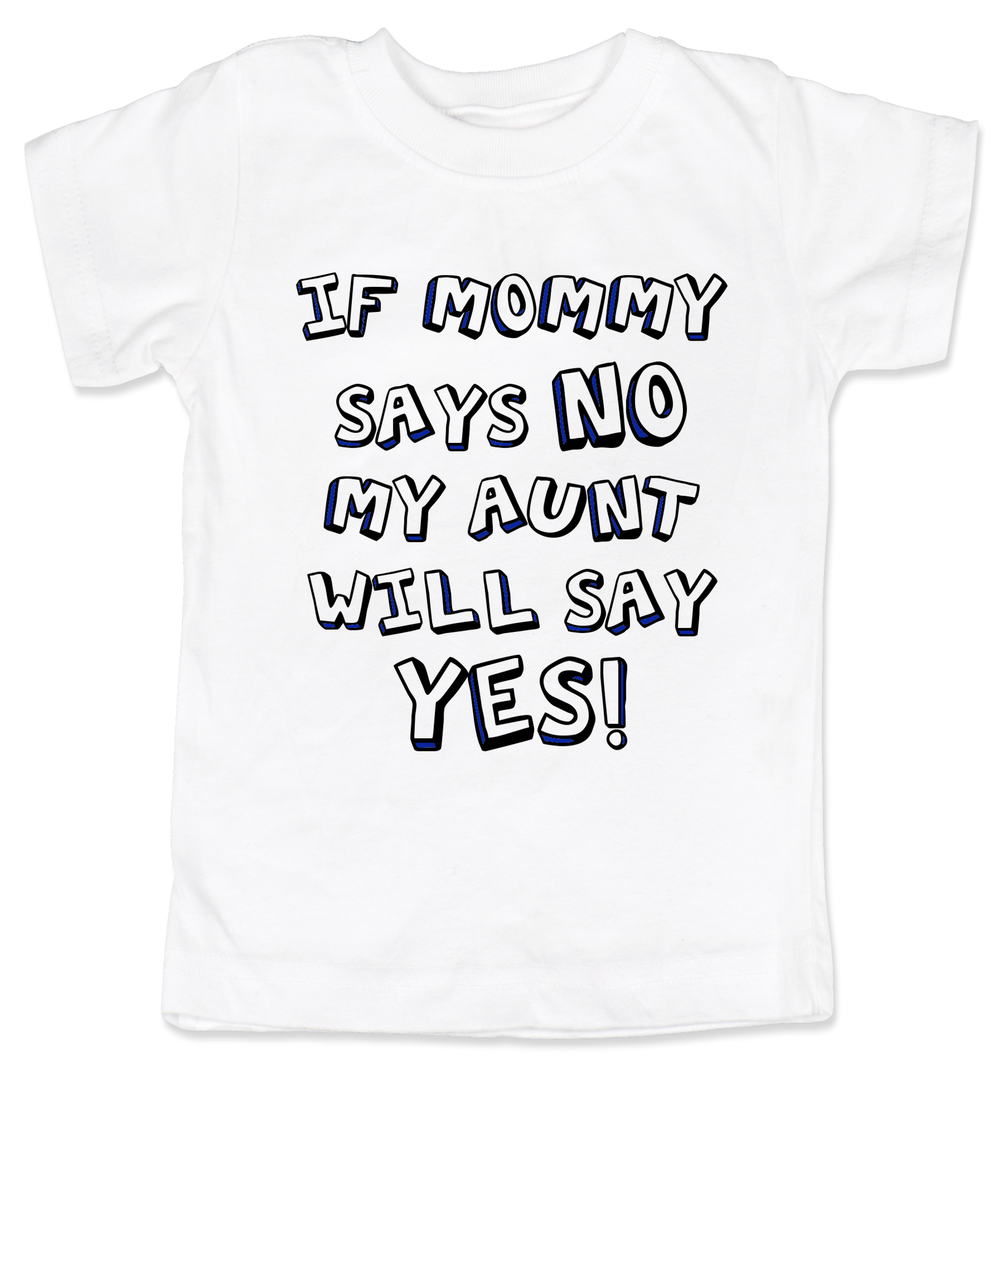 594c6ebdf My Aunt will say YES Toddler Shirt, if mommy says no my aunt will say